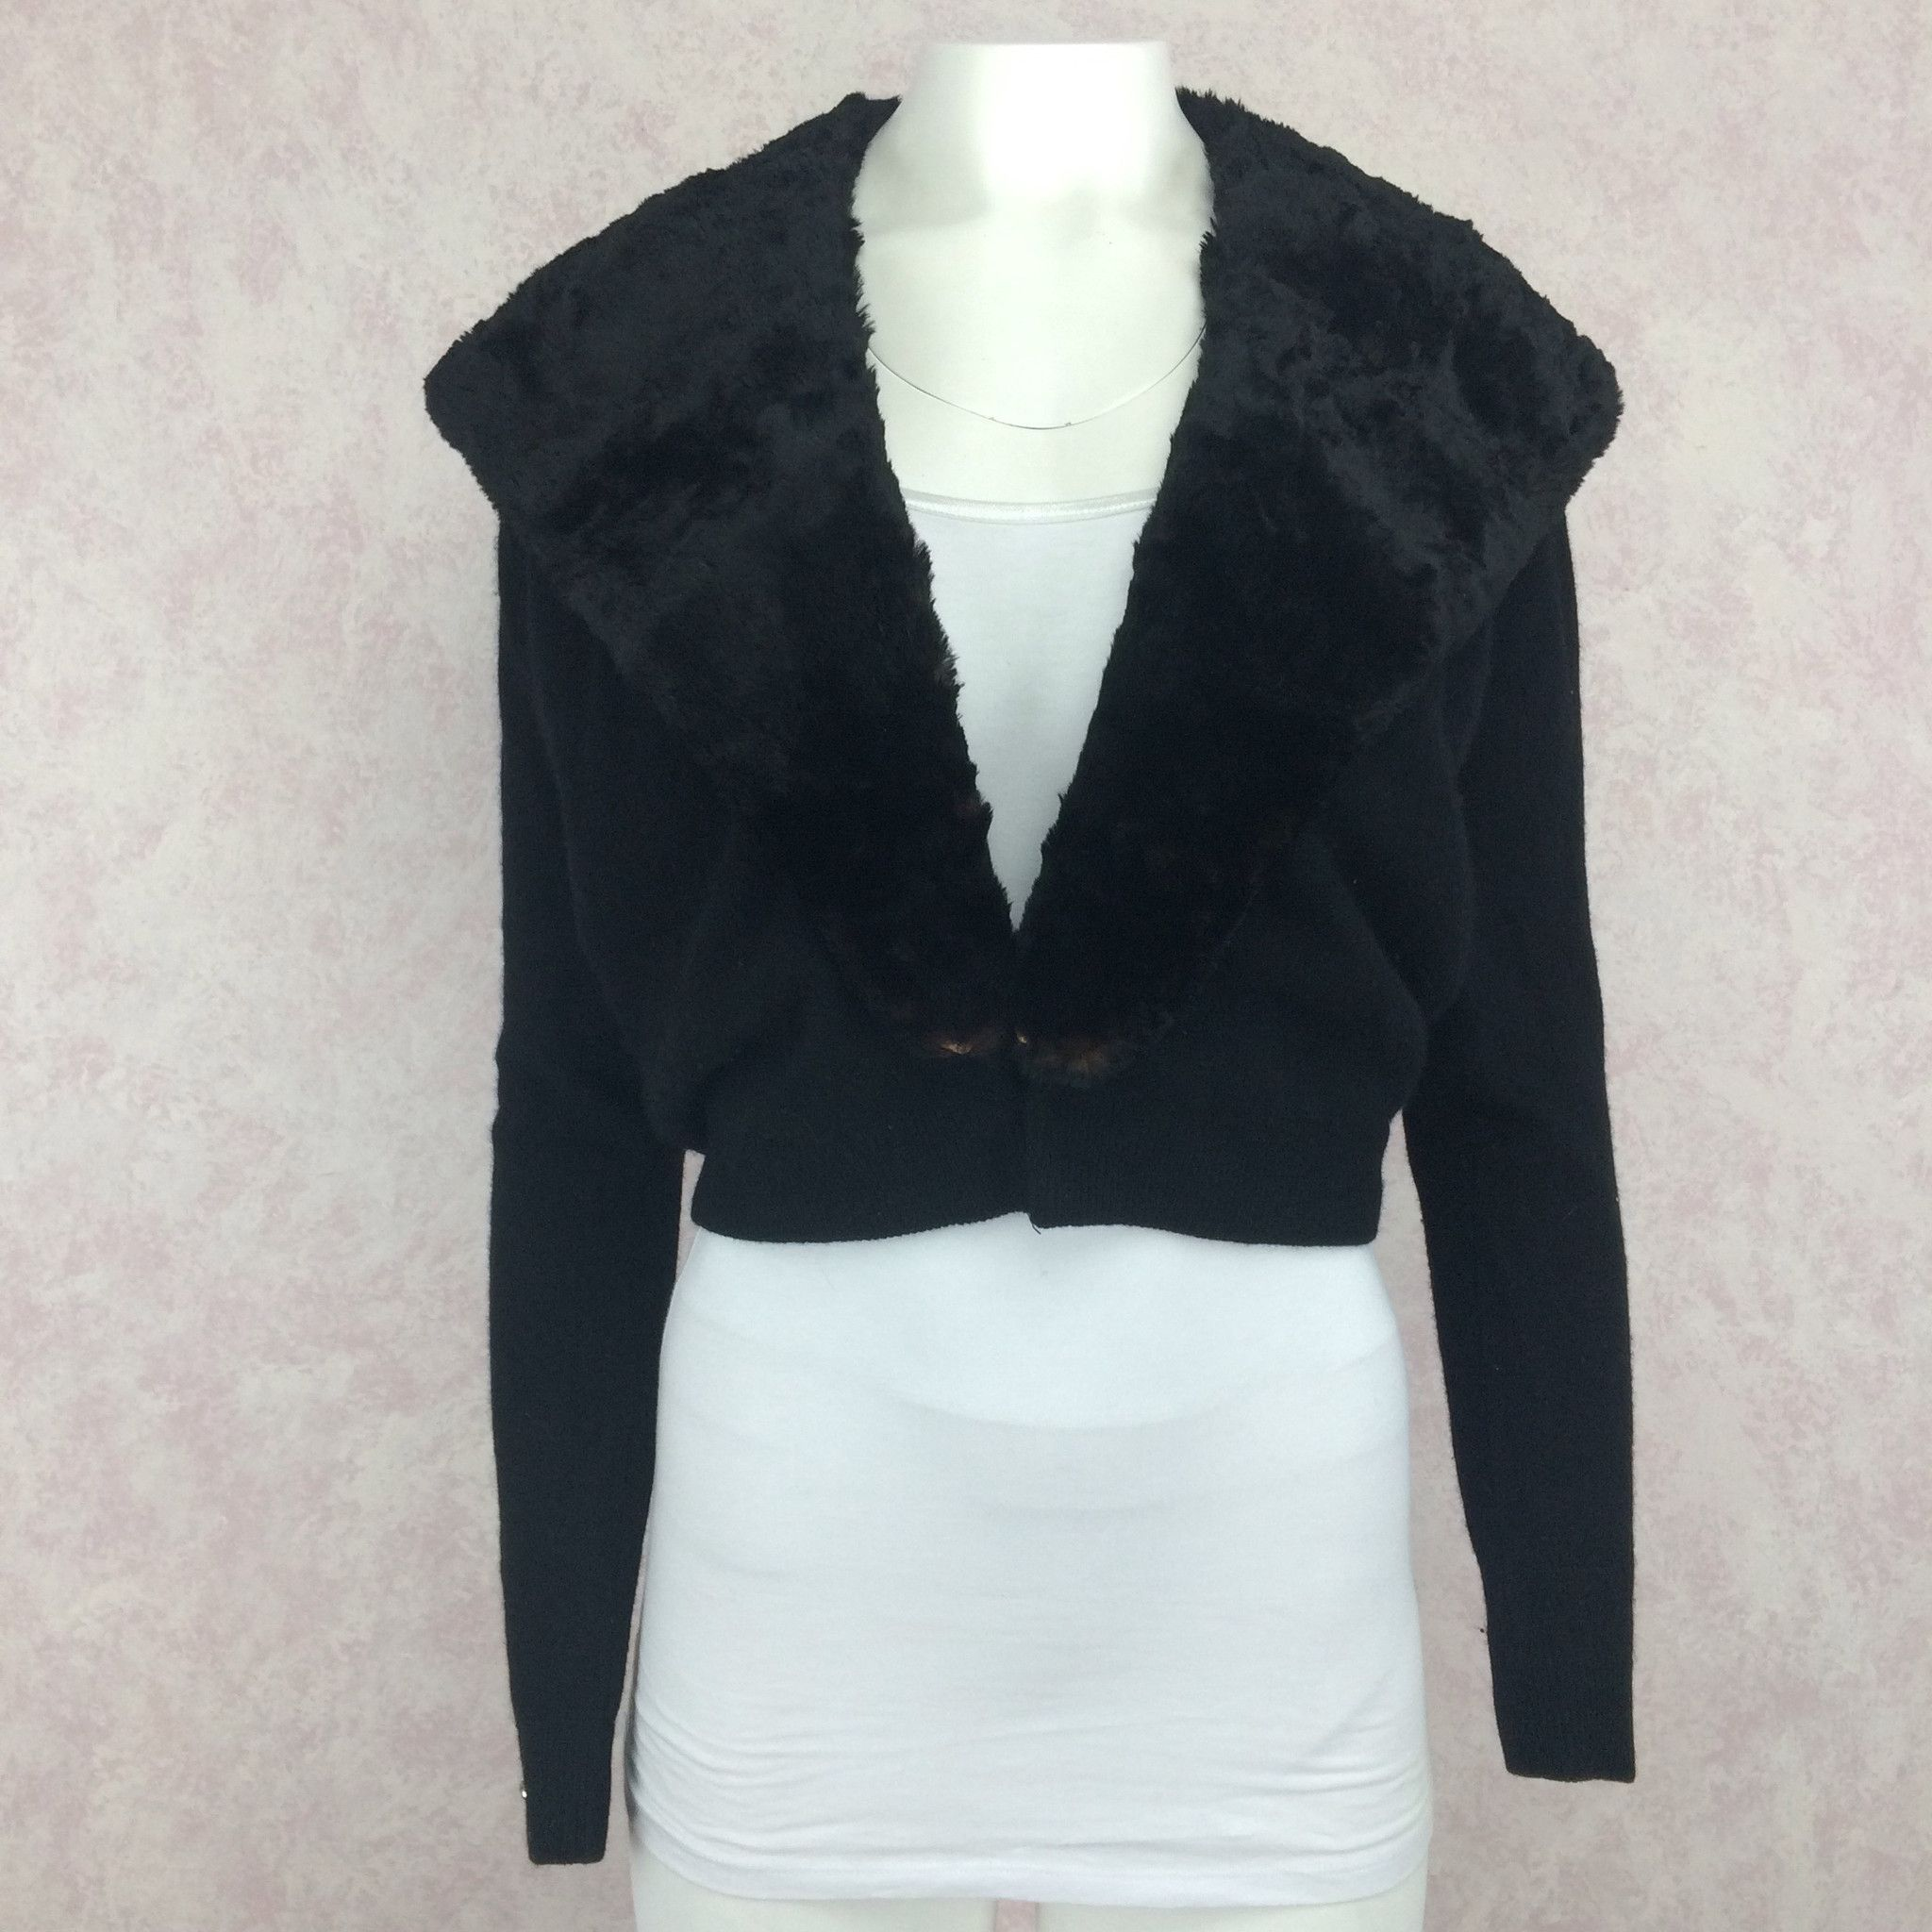 Vintage 50s Black Cropped Cardigan Sweater w/Fur Collar | 50 ...